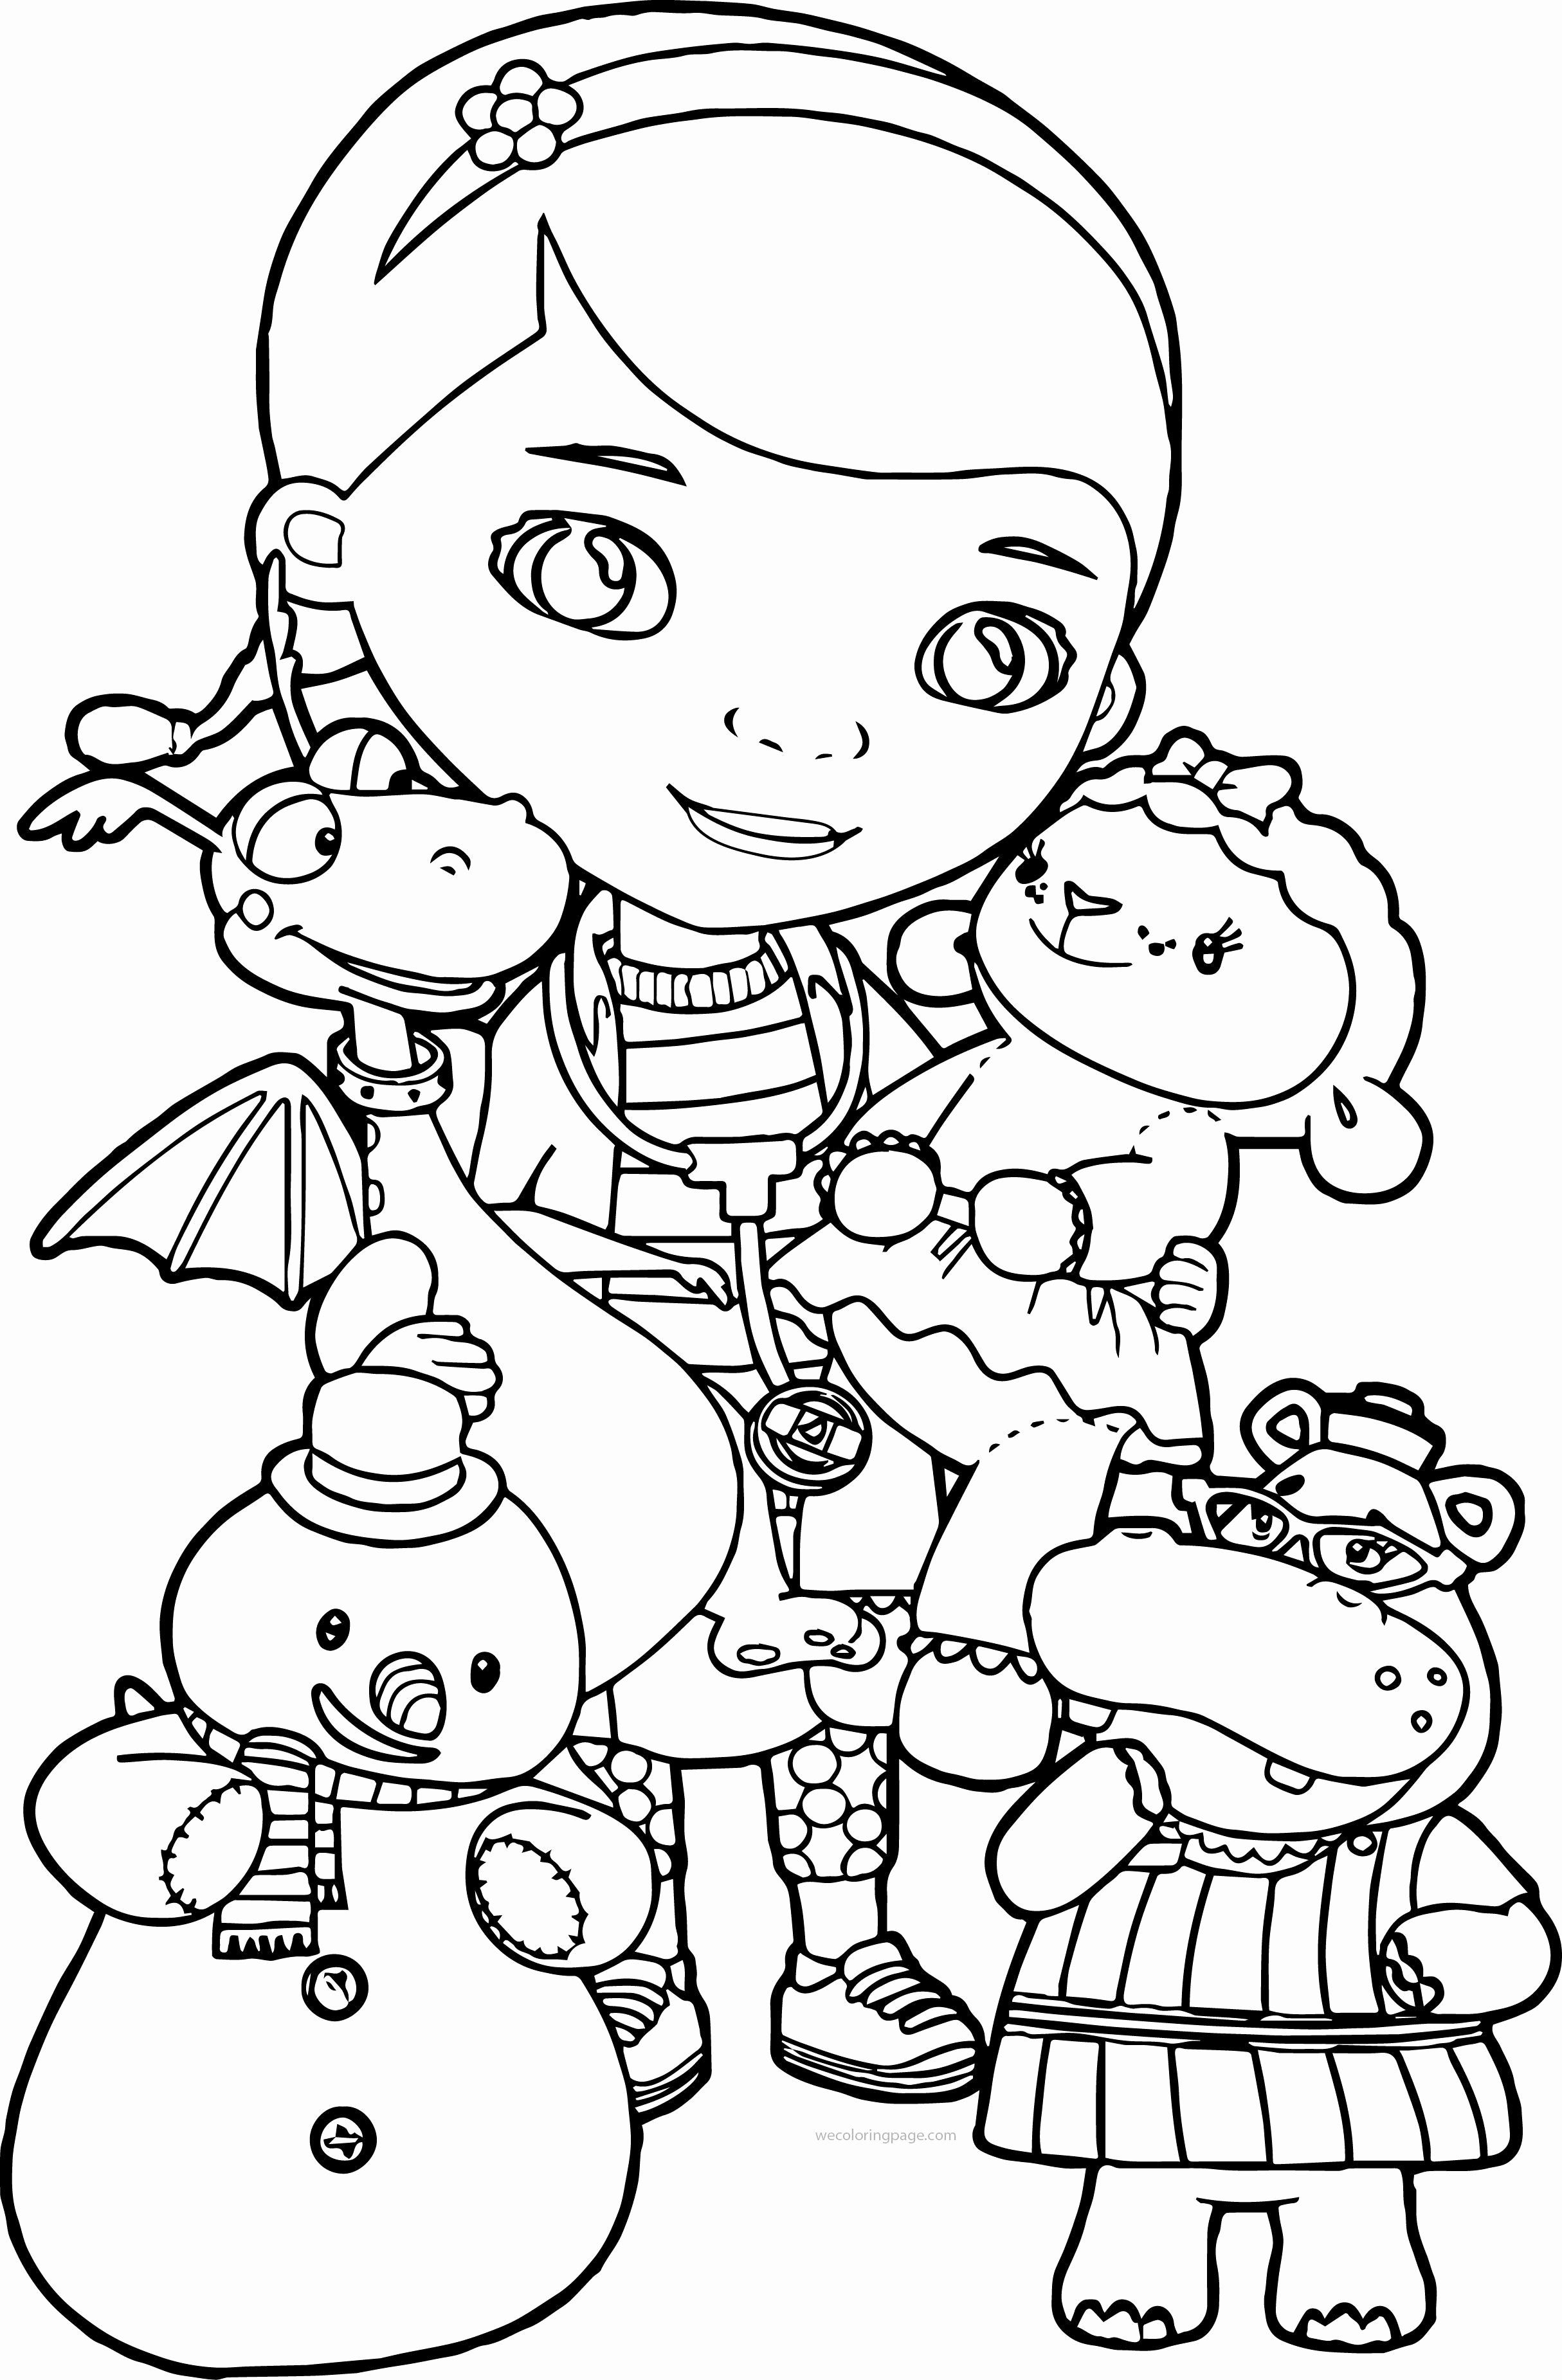 Doc Mcstuffins Coloring Page Luxury Doc Mcstuffins Coloring Pages Wecoloringpage Pinterest Doc Mcstuffins Coloring Pages Disney Coloring Pages Coloring Pages